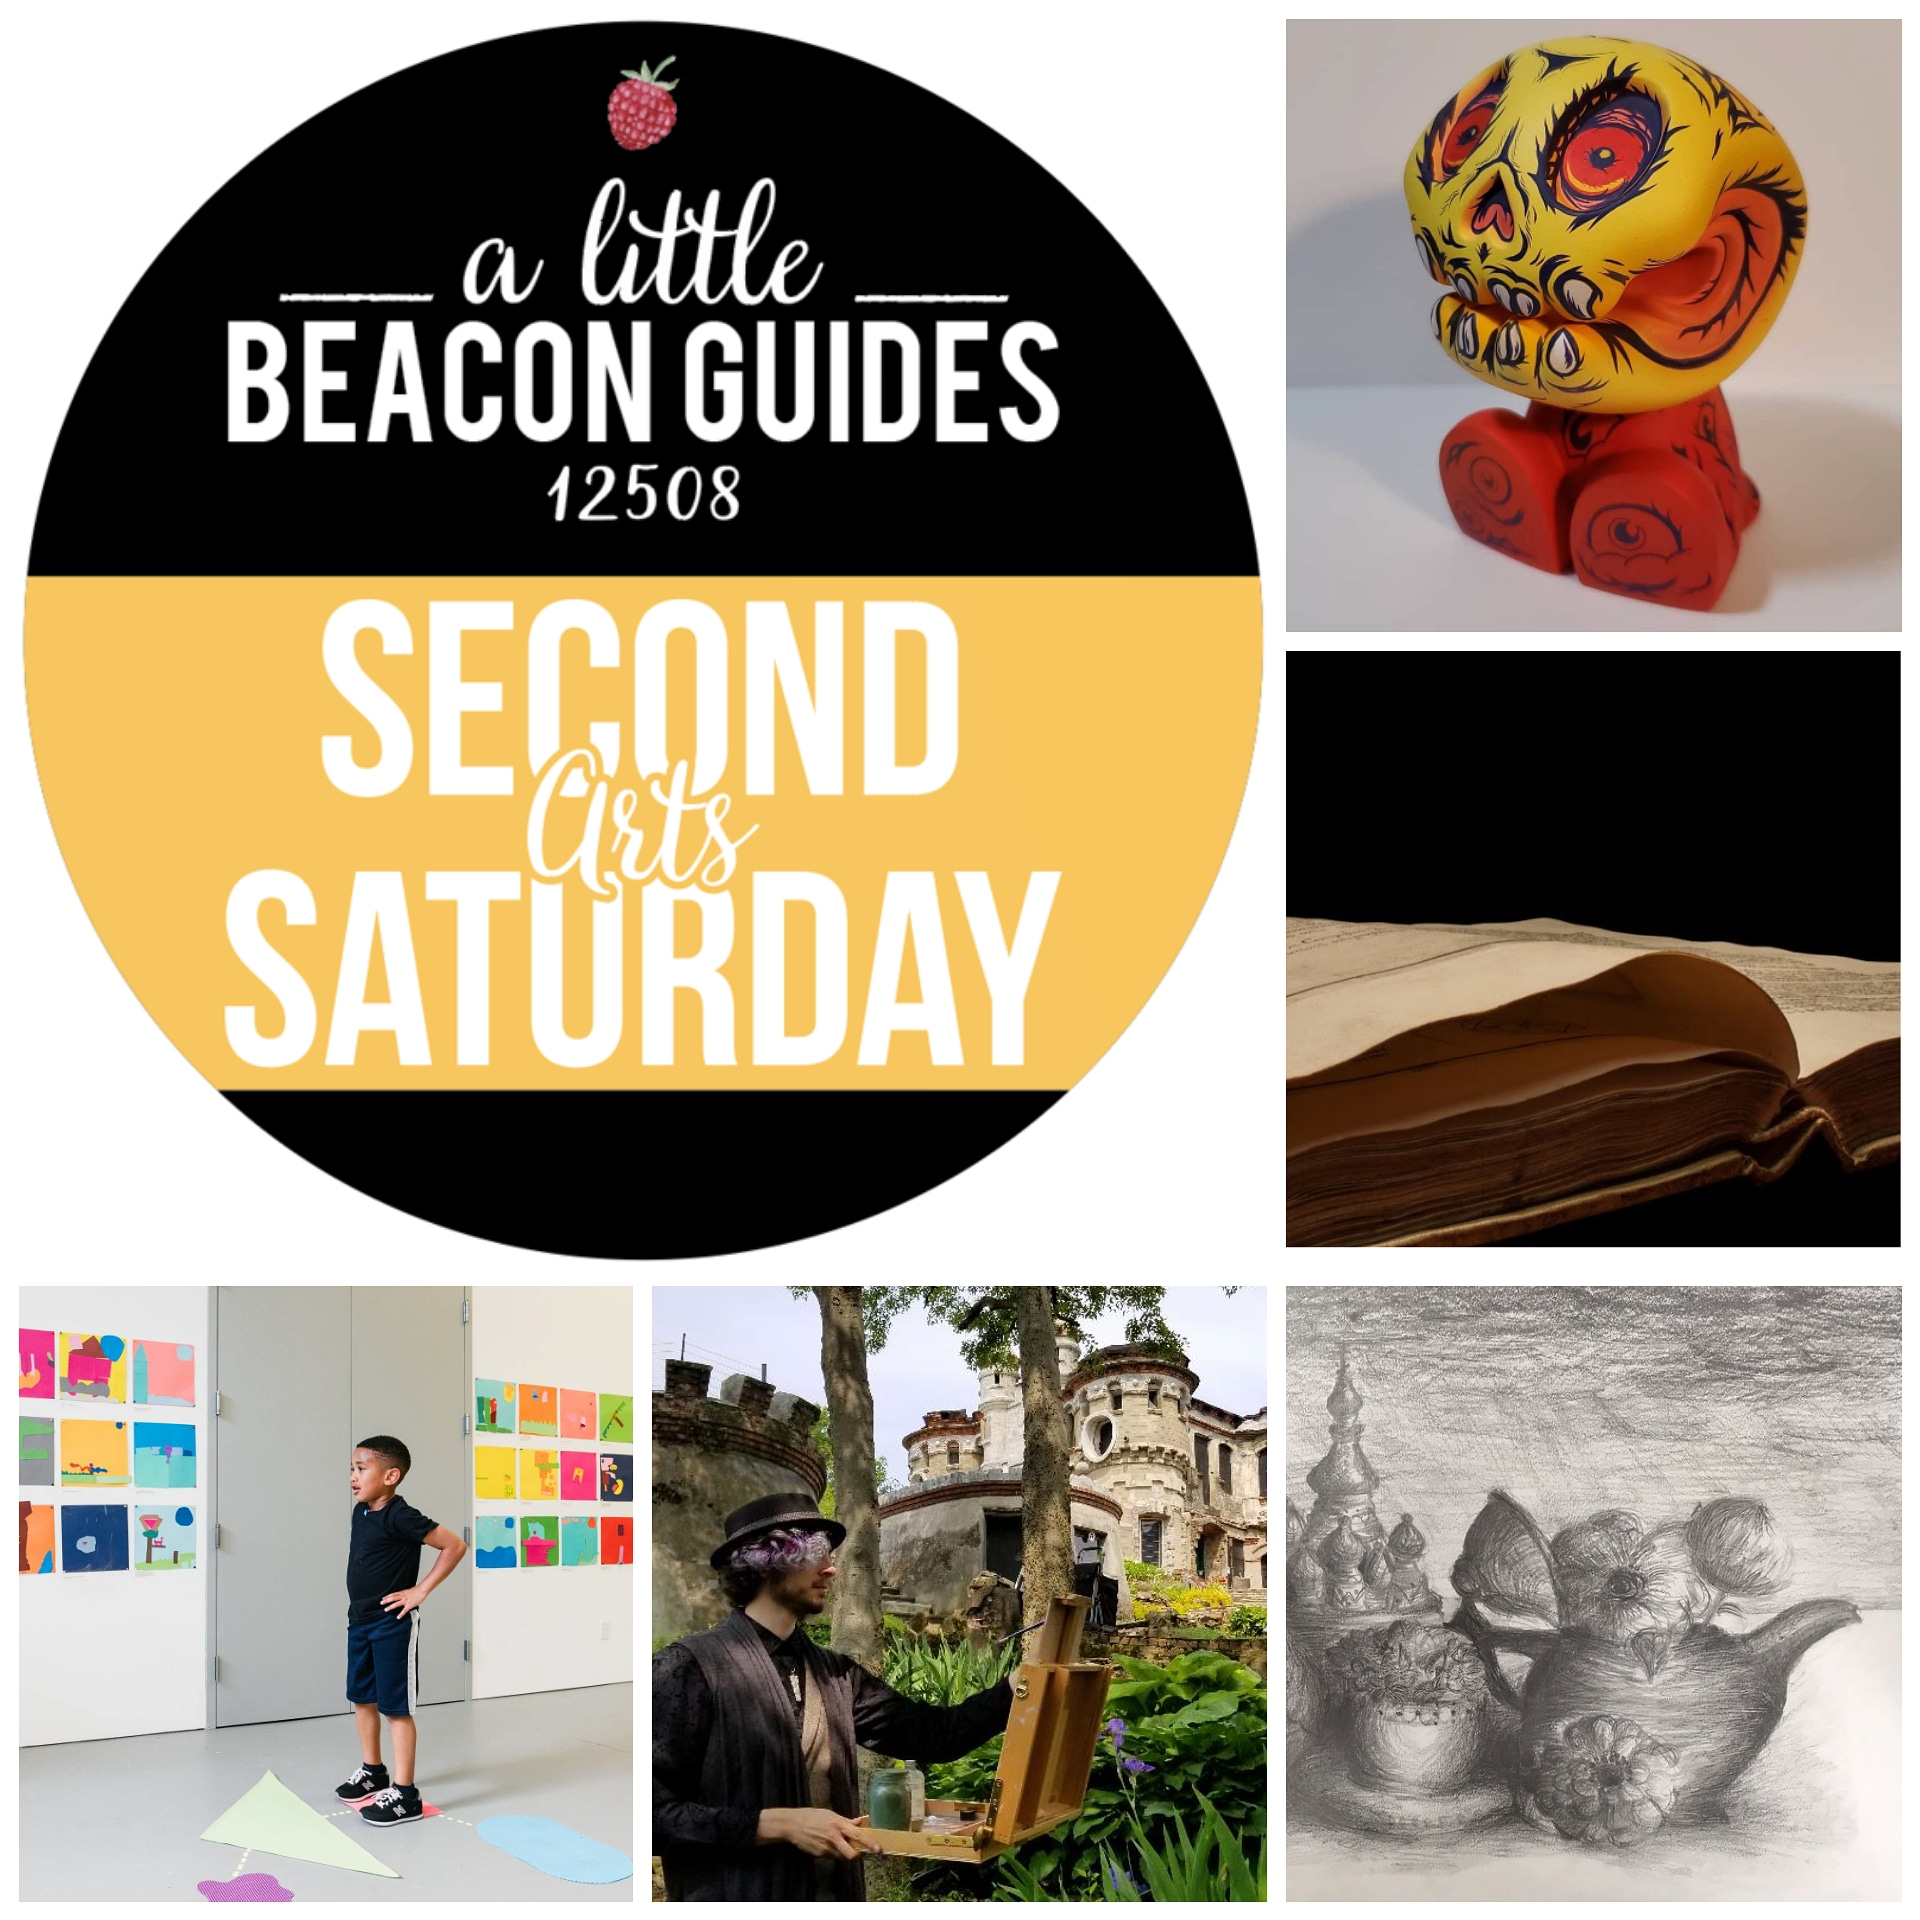 HAPPY SECOND SATURDAY FOR JUNE 2019! NEW SHOWS ARE OPENING ALL AROUND BEACON. SOME OF THEM INCLUDE, CLOCKWISE FROM TOP RIGHT: RATTLE & BONES AT CLUTTER MAGAZINE GALLERY; LAURA MIGLIORINO AT PHOTO BOOK WORKS; BEACON SCHOOLS ART STUDENTS AT HOWLAND PUBLIC LIBRARY; PLEIN-AIR PAINTERS AT BANNERMAN ISLAND GALLERY; AND MORE FROM BEACON SCHOOLKIDS AT DIA: BEACON.